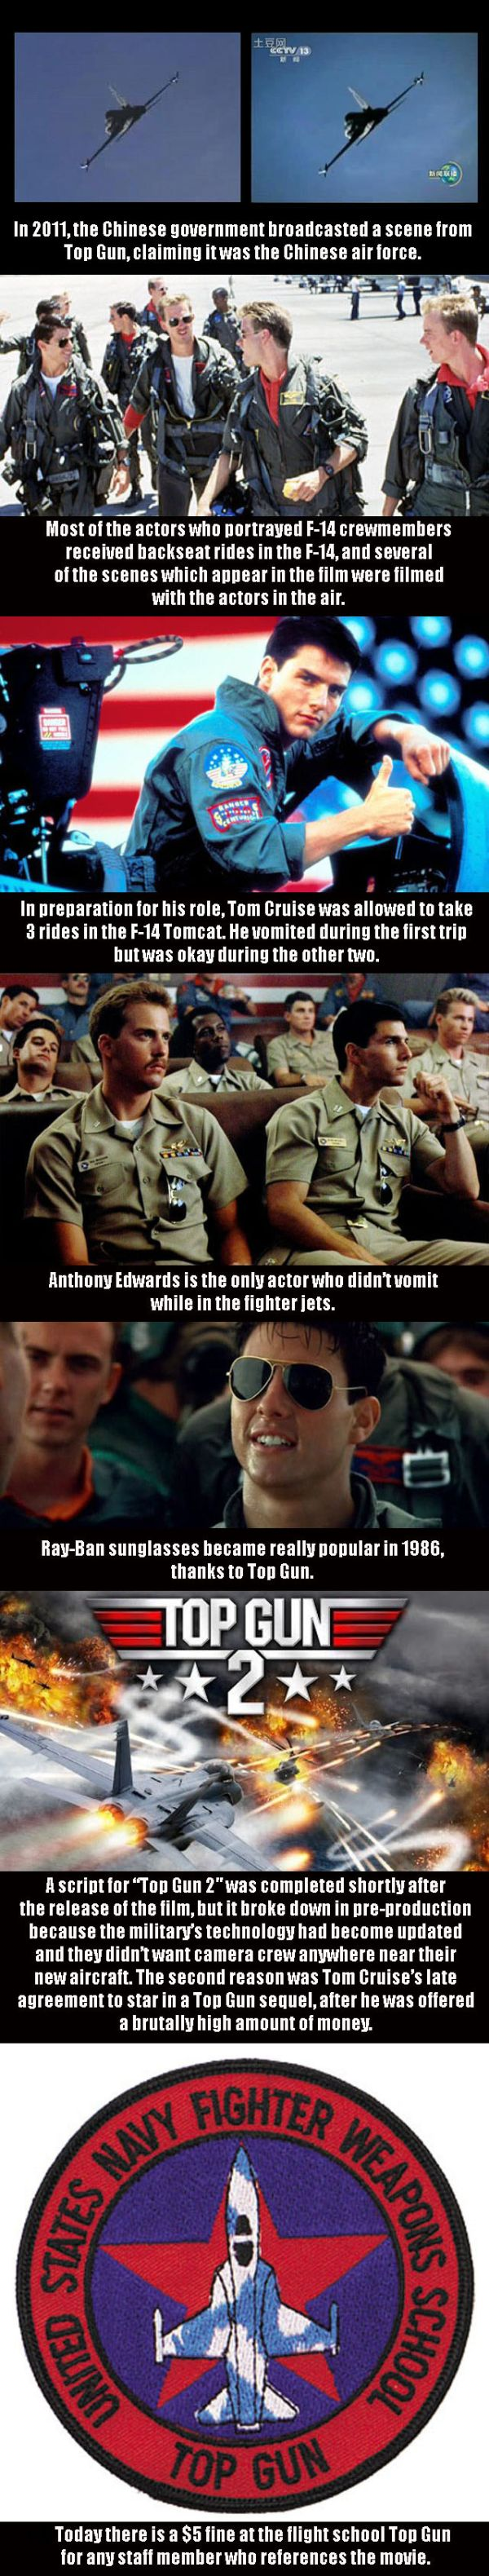 Top Gun Movie Trivia - Military humor